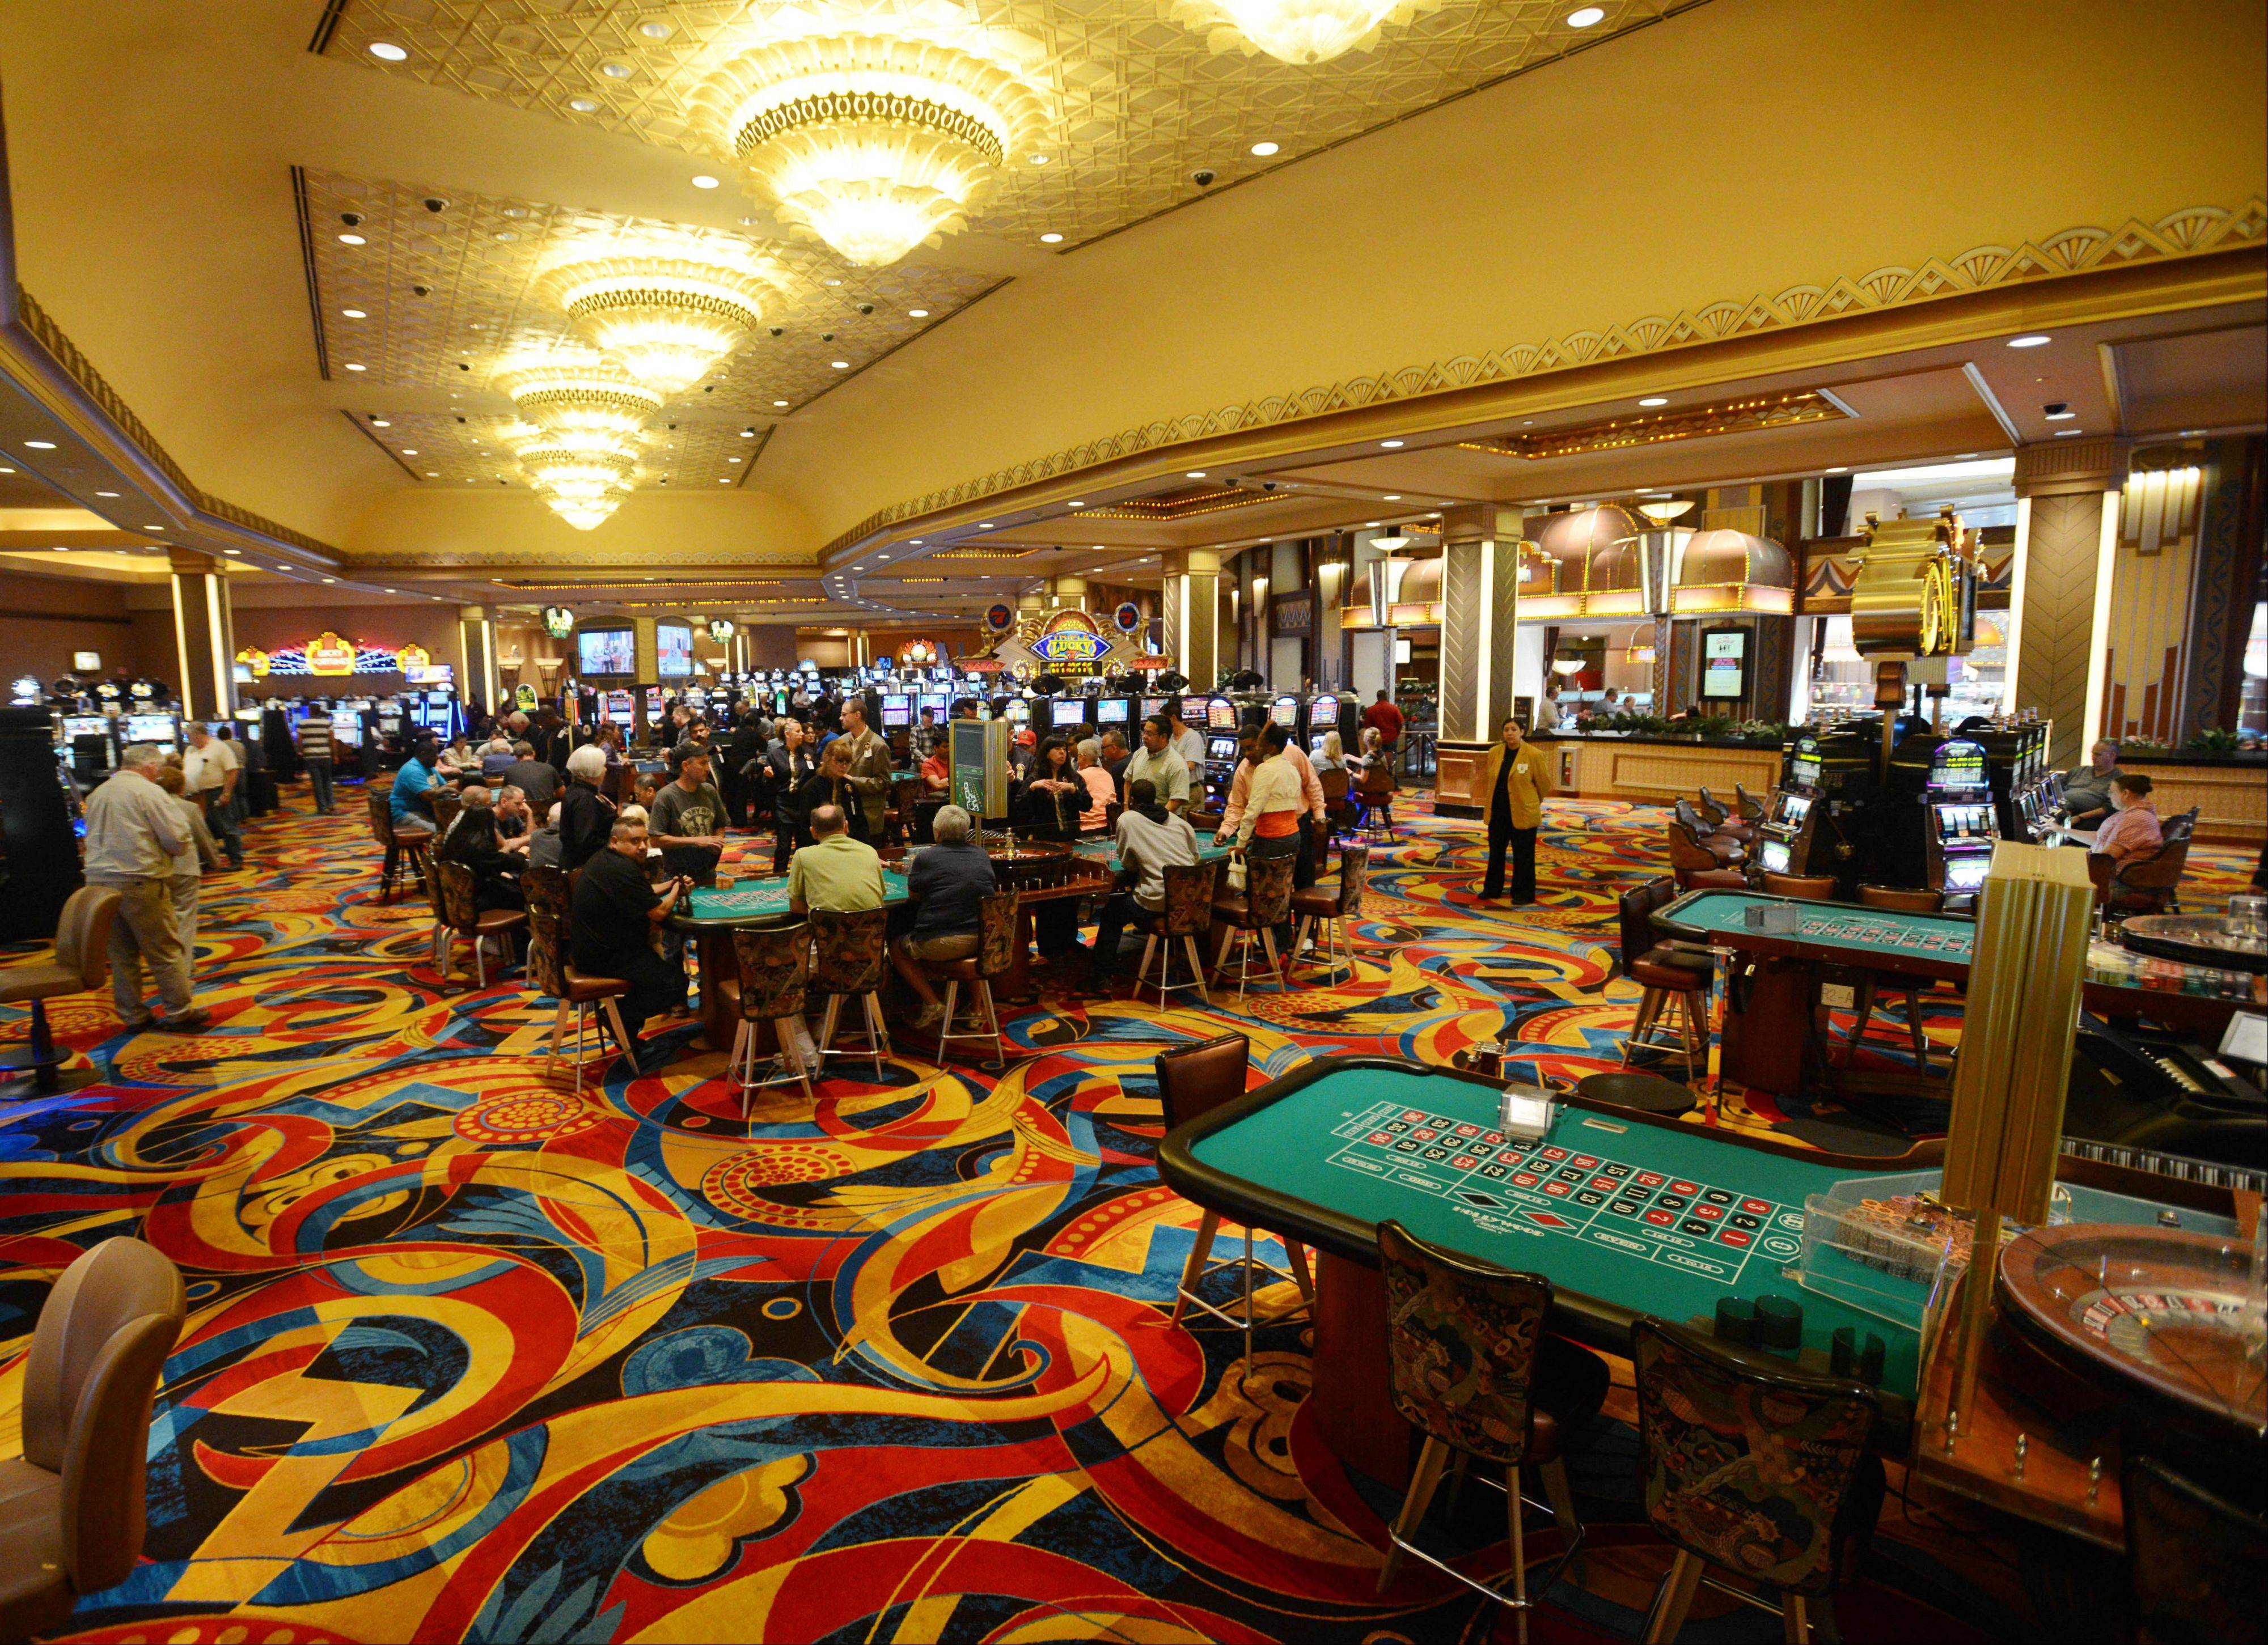 Aurora casino hollywood minimums table gambling grant applicants